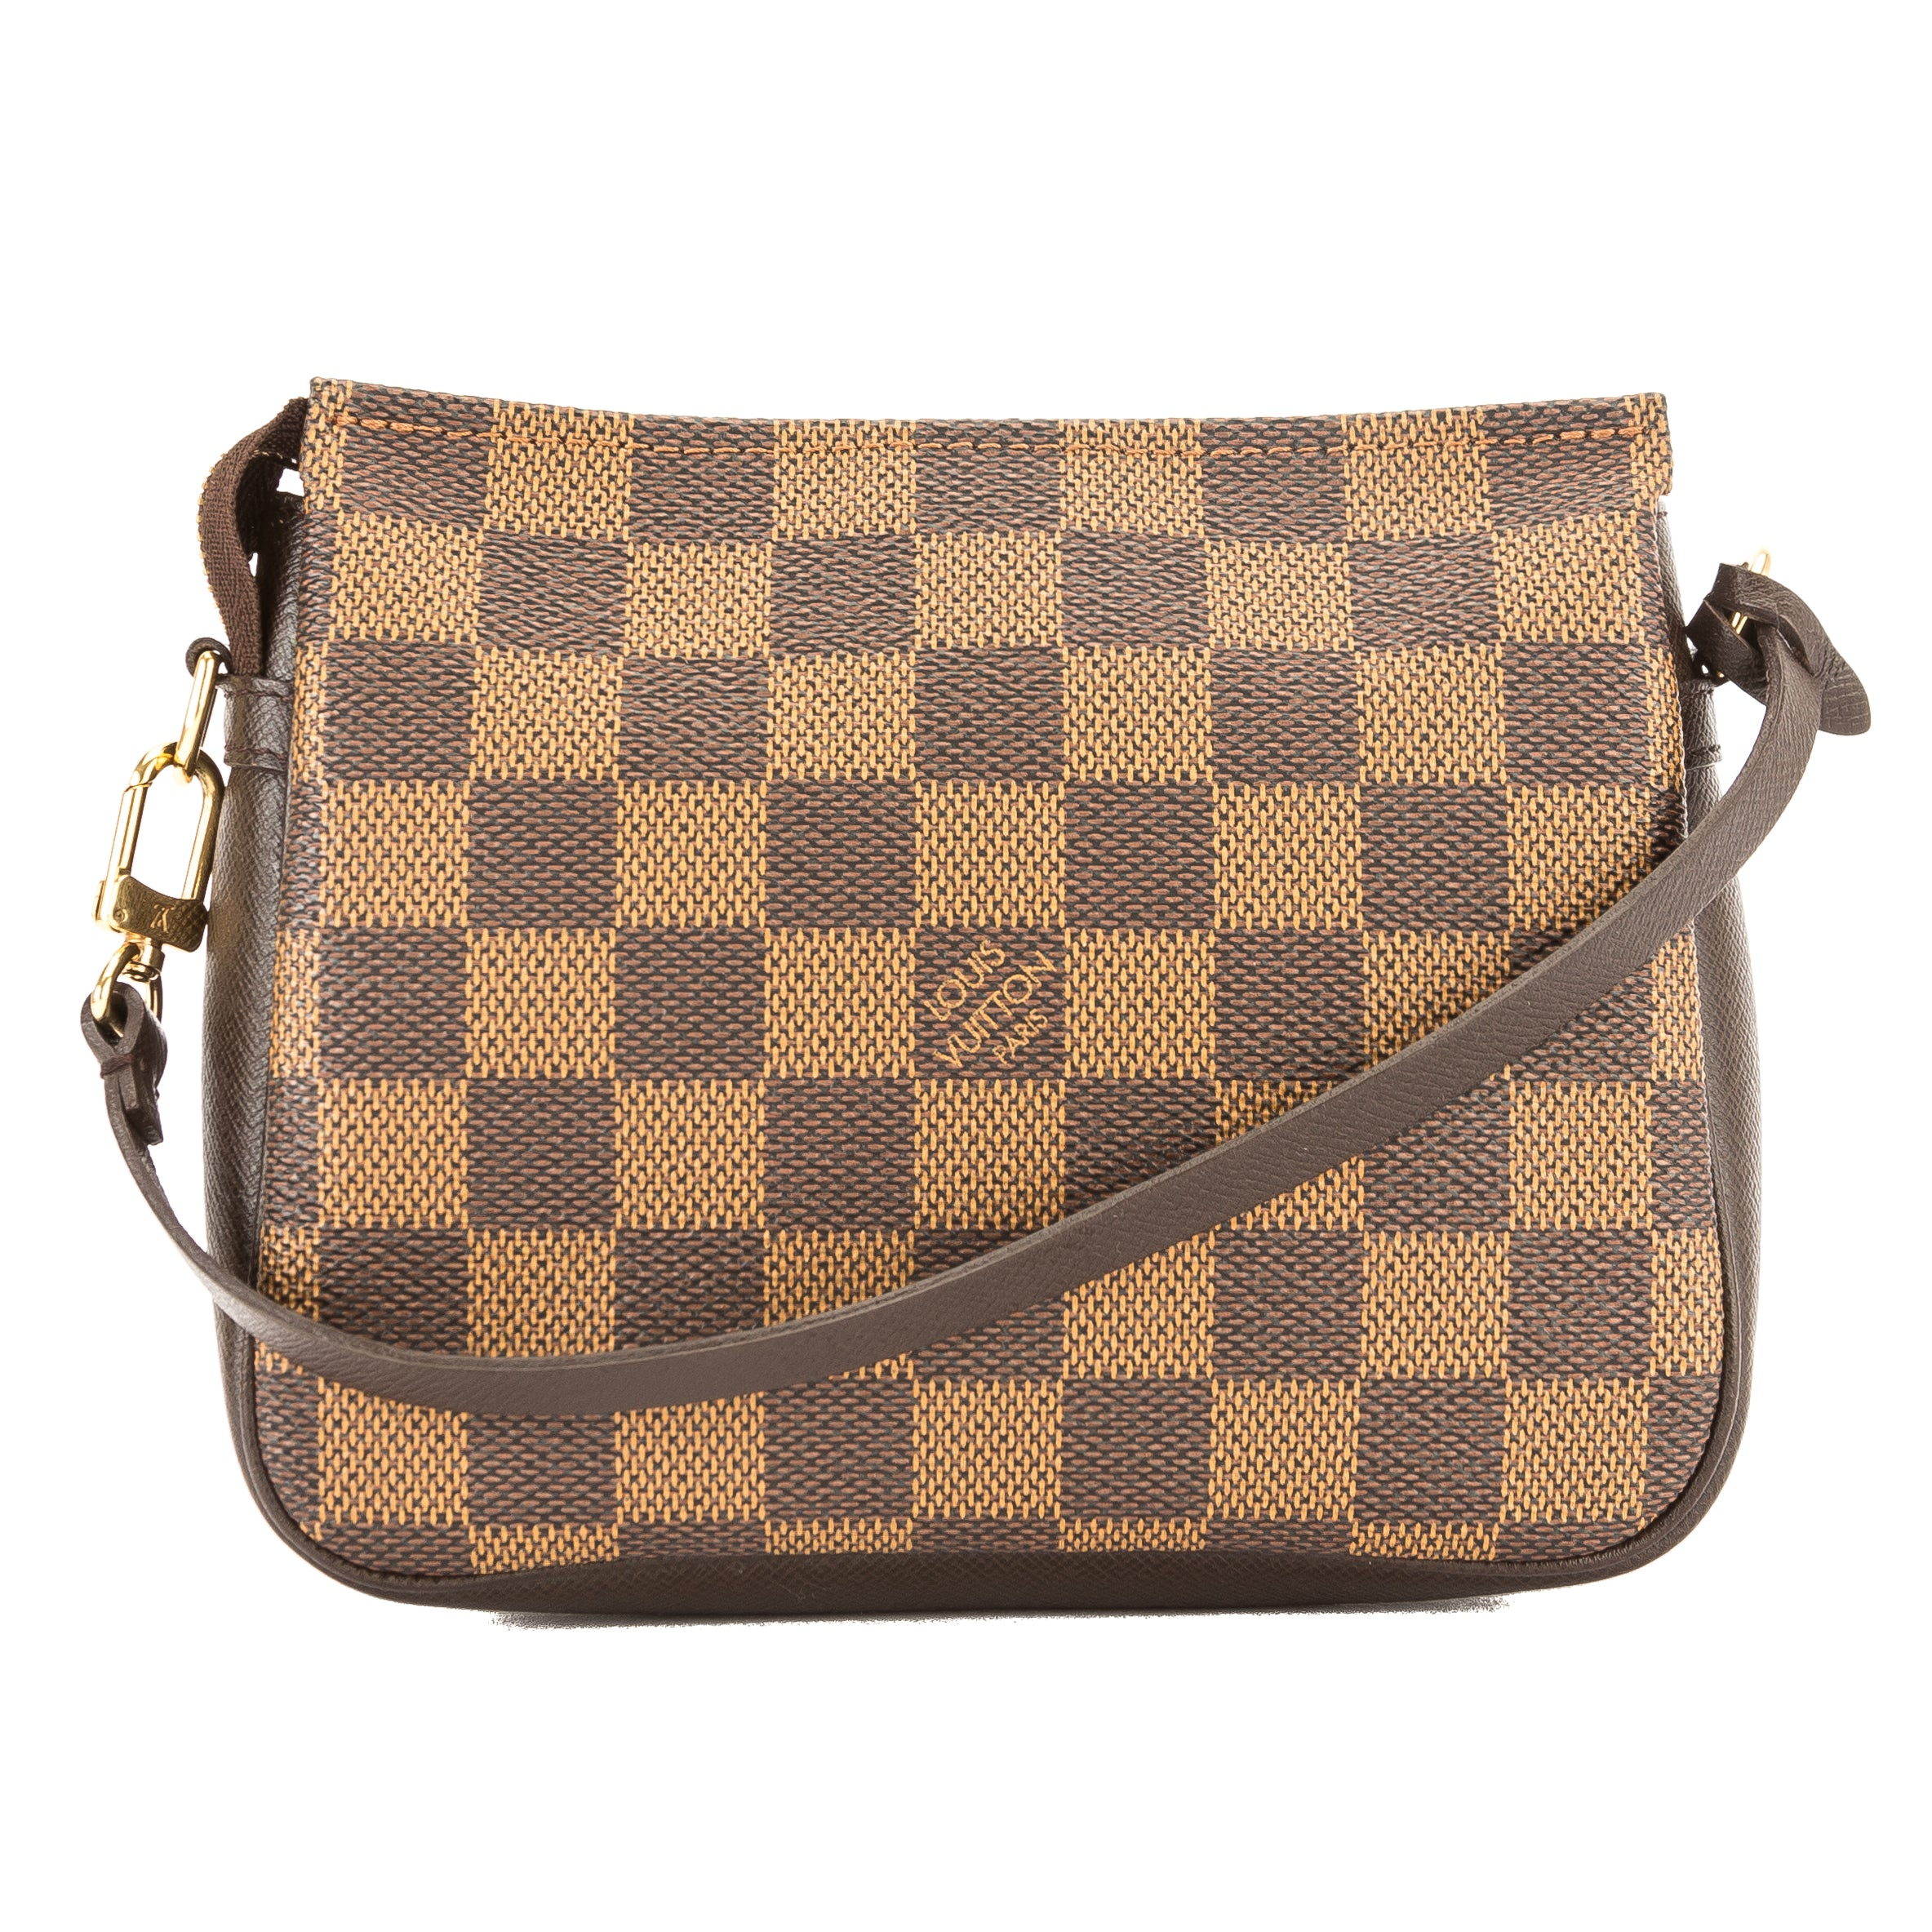 026b5e95fb7d4 Louis Vuitton Damier Ebene Trousse Cosmetic Tote (3836003) - 3836003 ...